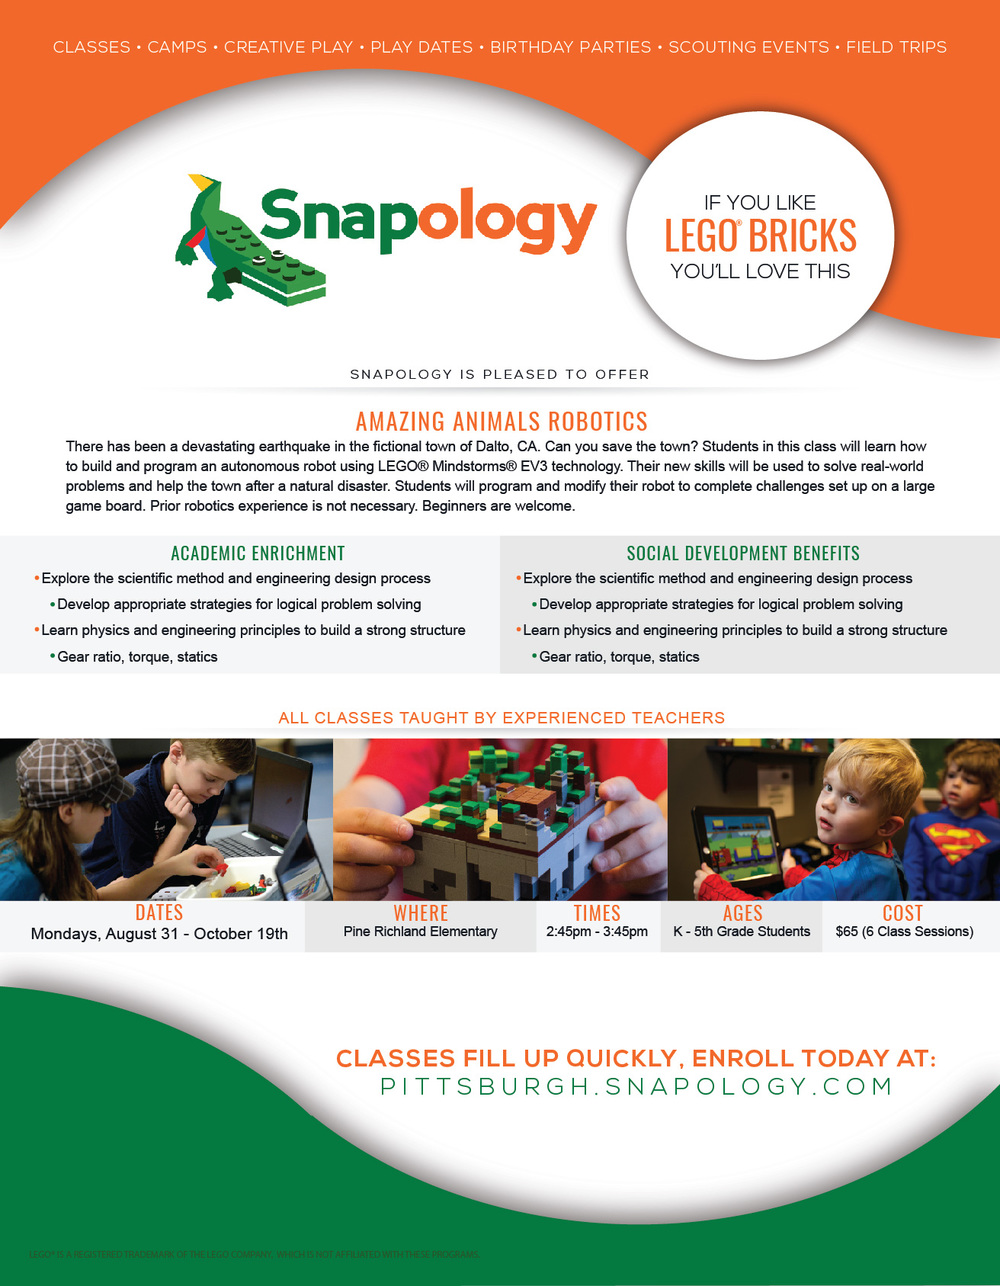 Snapology-FlyerTemplate_Flyer 1 Class.jpg